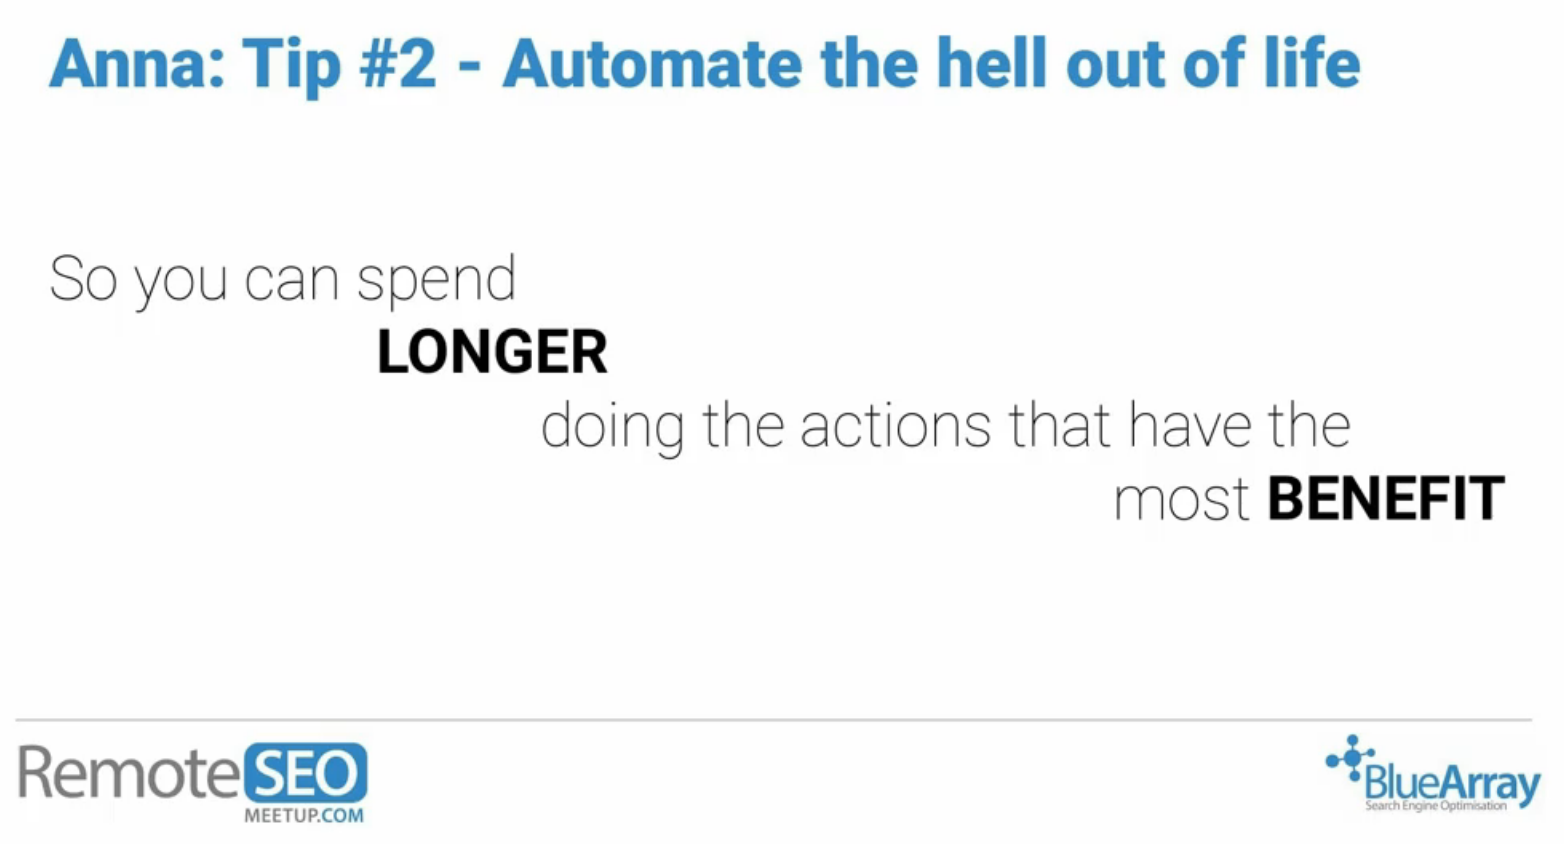 Automate the hell out of life RemoteSEO tip